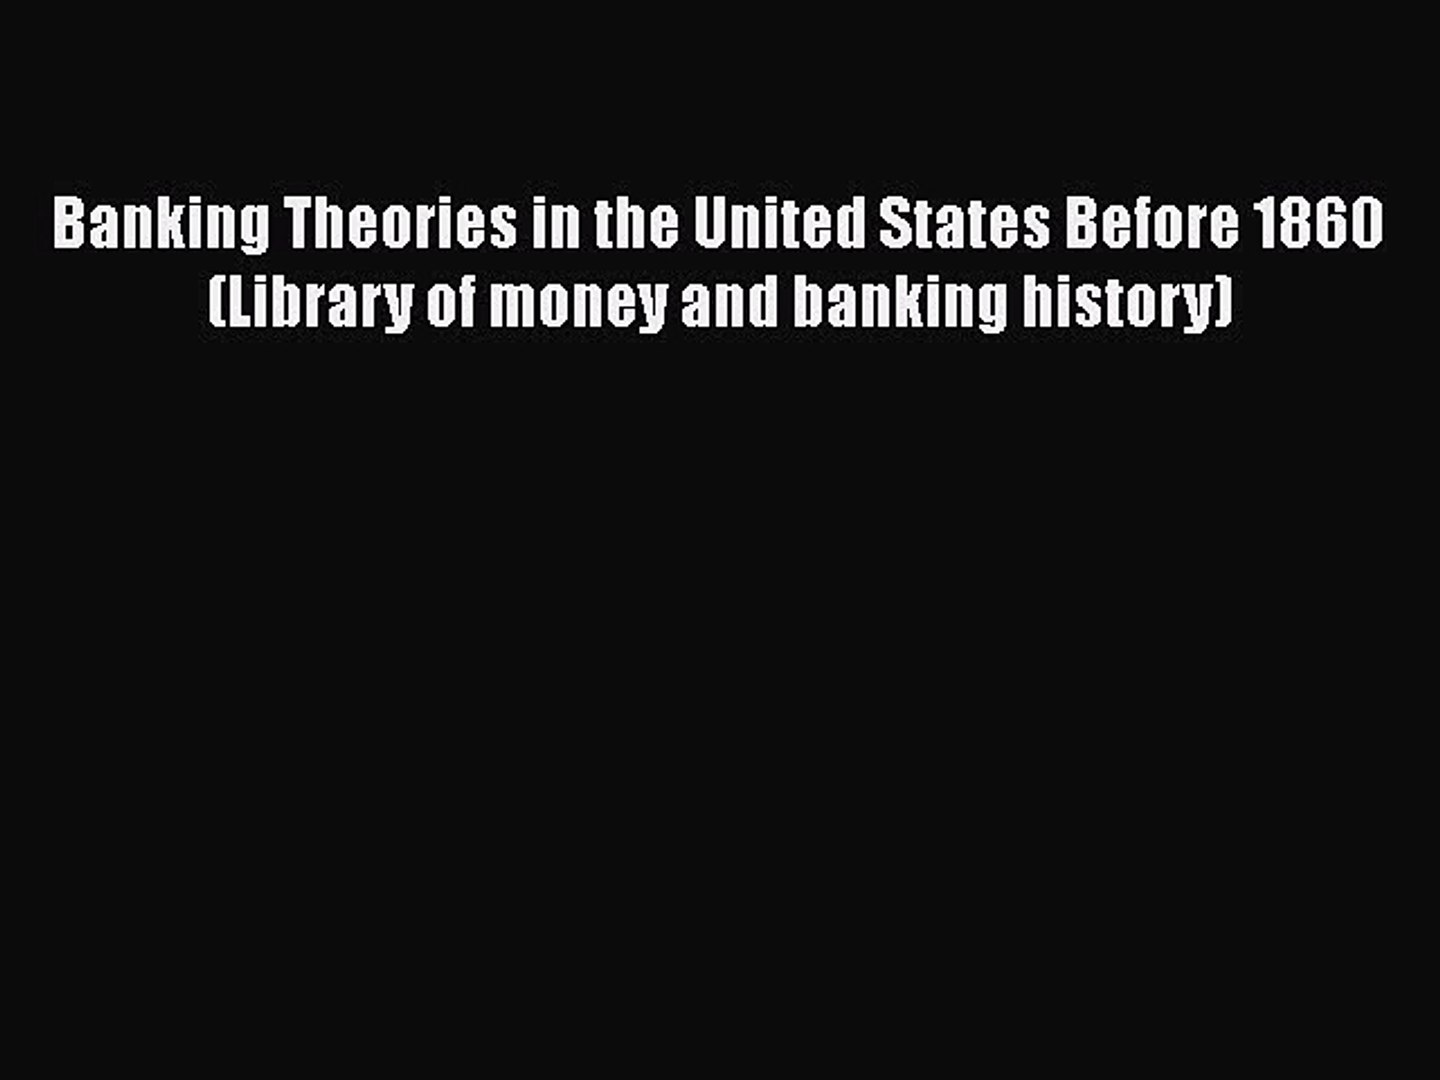 PDF Banking Theories in the United States Before 1860 (Library of money and banking history)